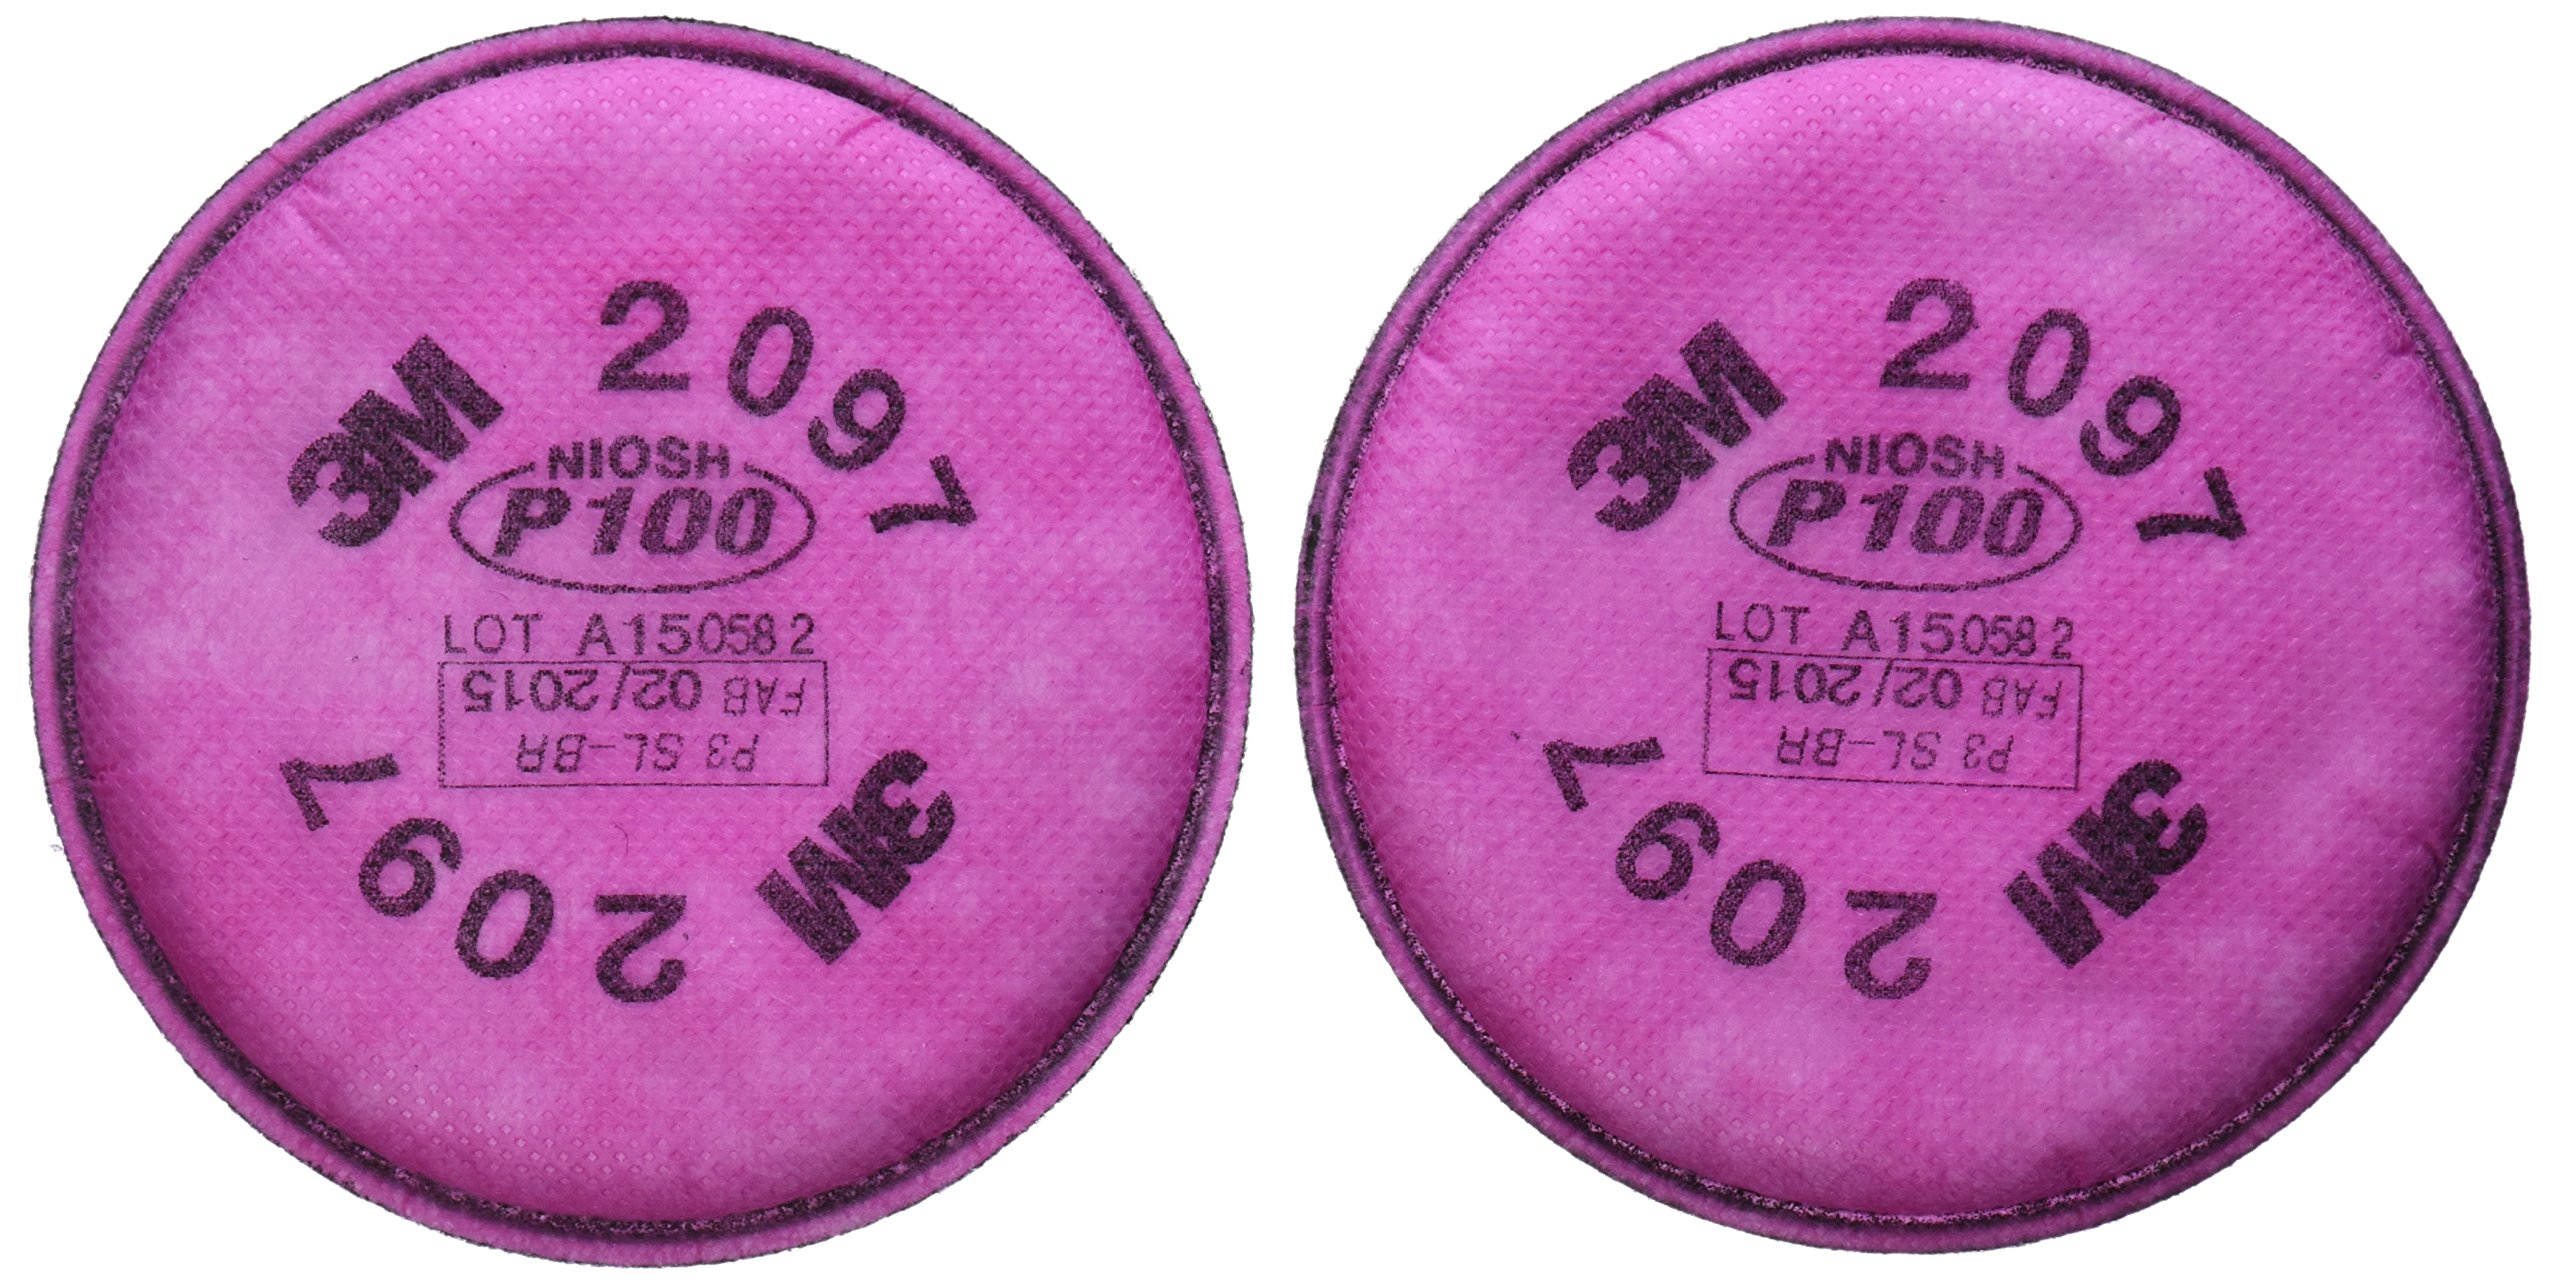 3M - 2097 P100 Particulate Filter For 5000, 6000, 6500, 7000 And FF-4 Pink